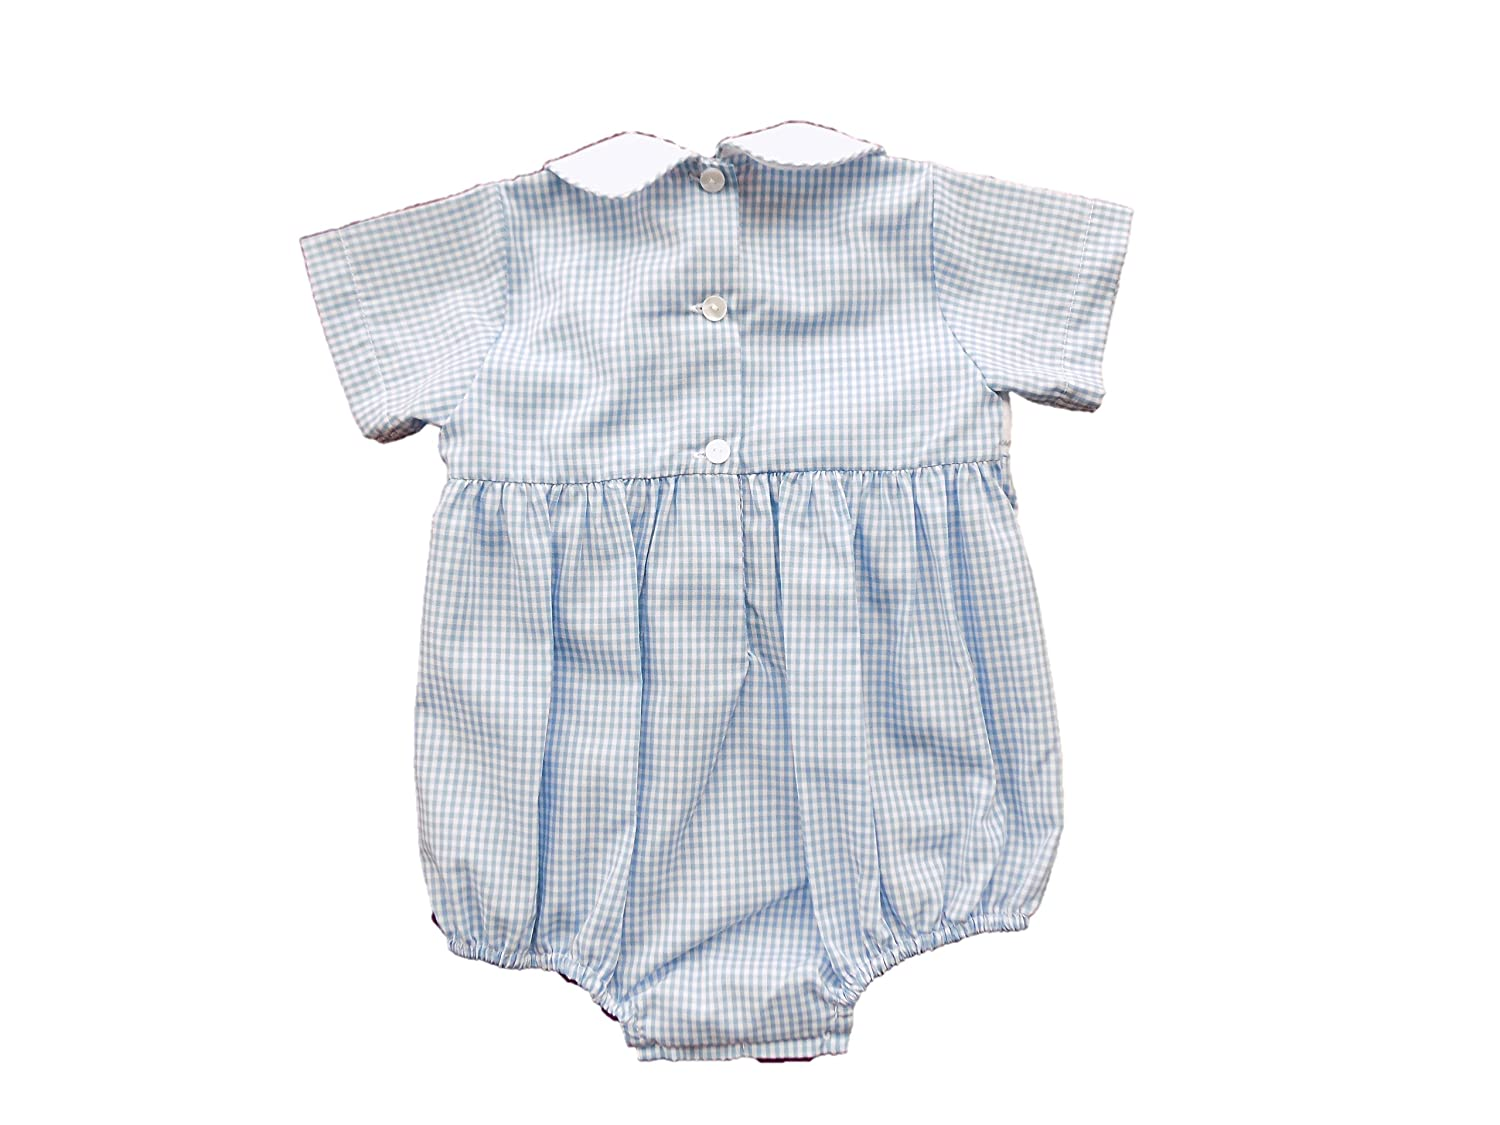 d66dc87b6 authentic f8d37 07180 edgehill collection baby boys smocked one ...